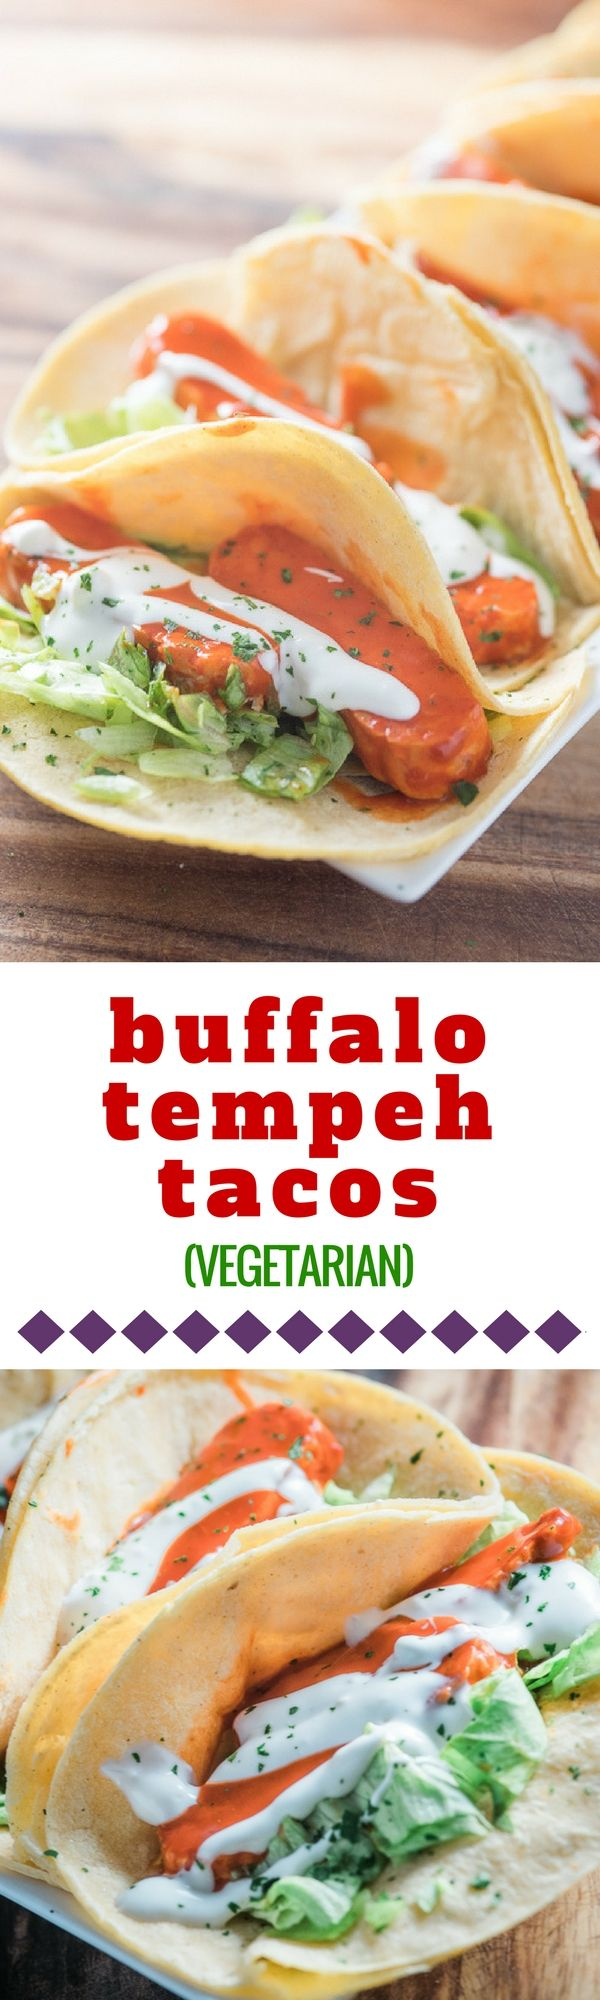 These vegetarian bufufalo tempeh tacos are packed with protein and loaded with flavor from spicy buffalo sauce and tangy blue cheese. #deliciouseveryday #tempeh #tacos #tacotuesday